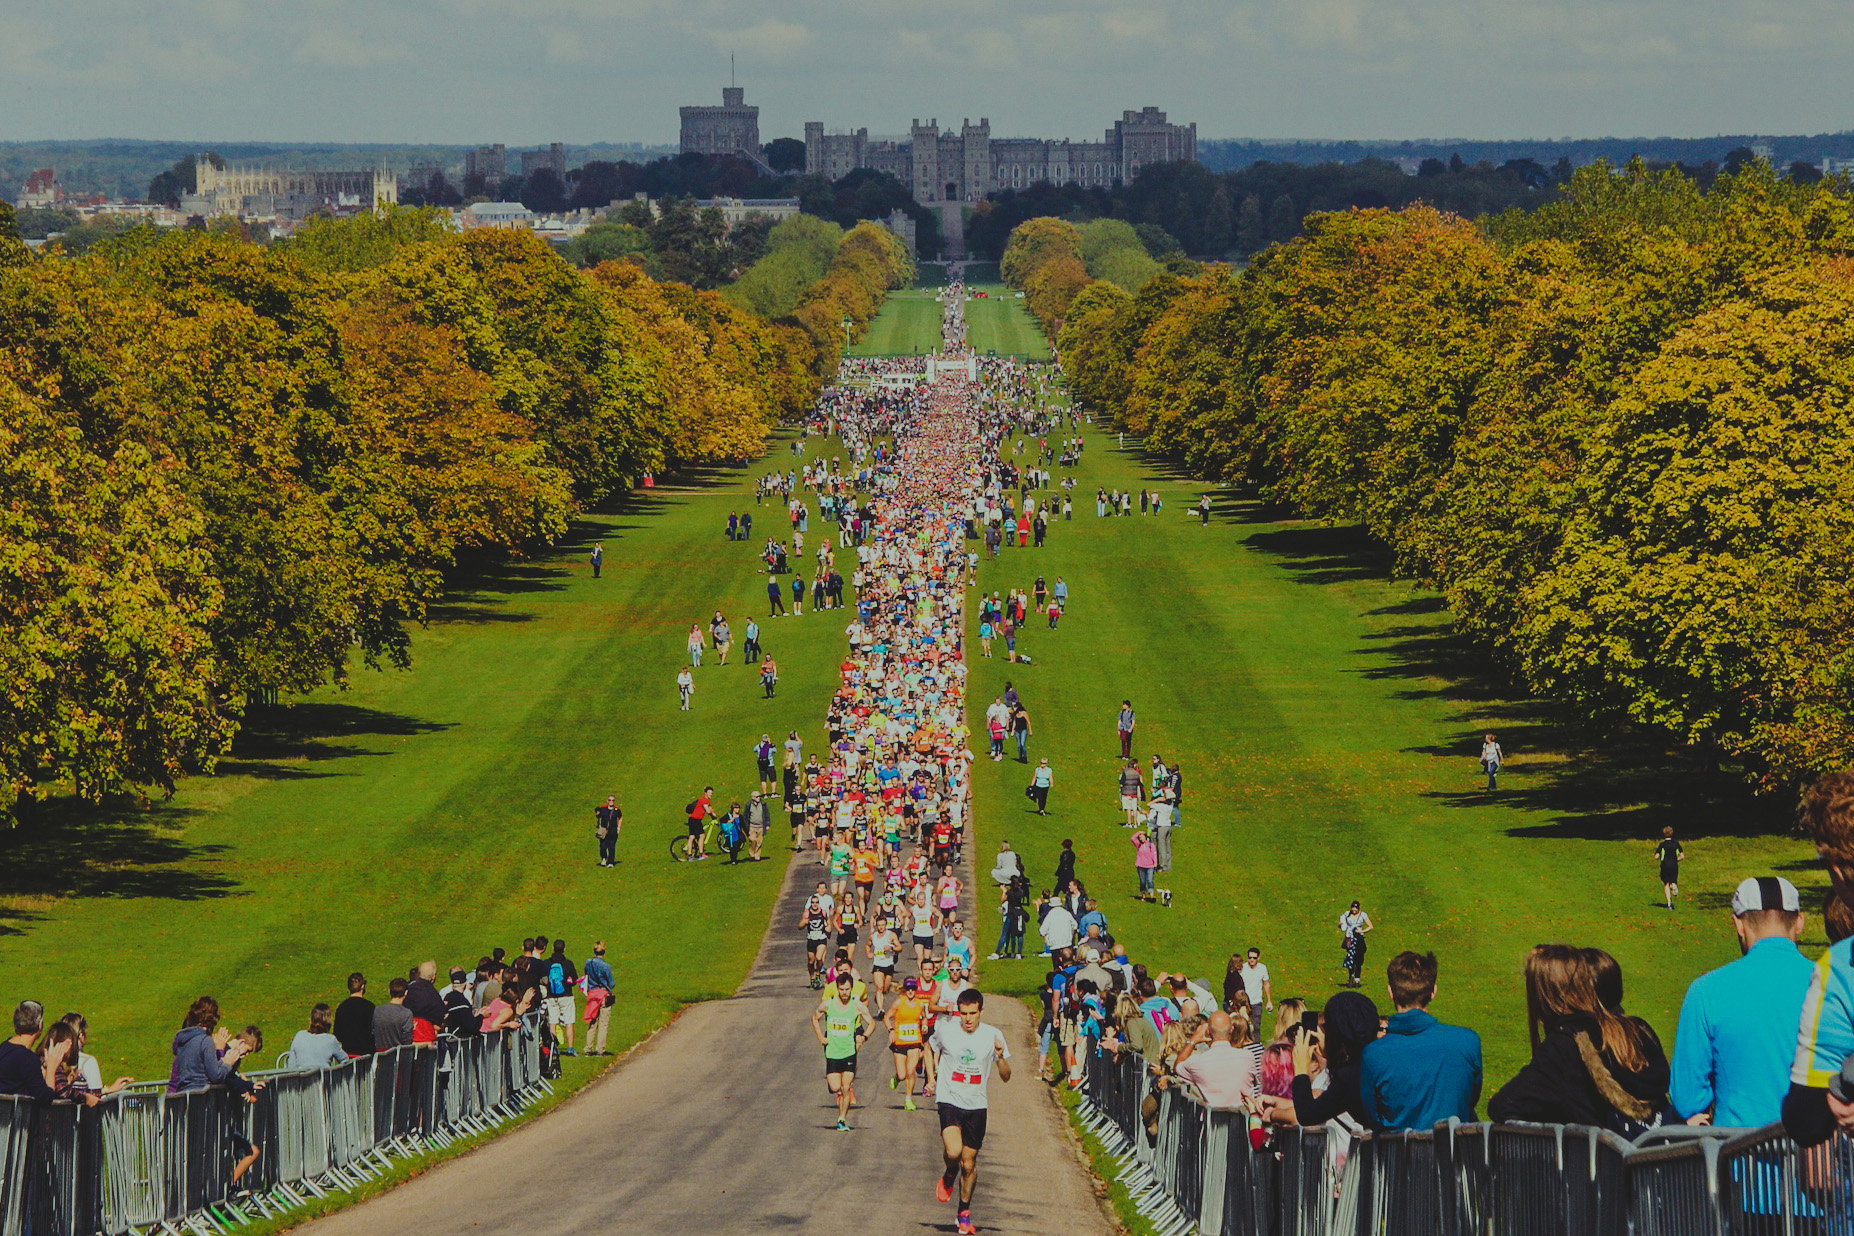 The Long Walk to Windsor Castle during the Half Marathon